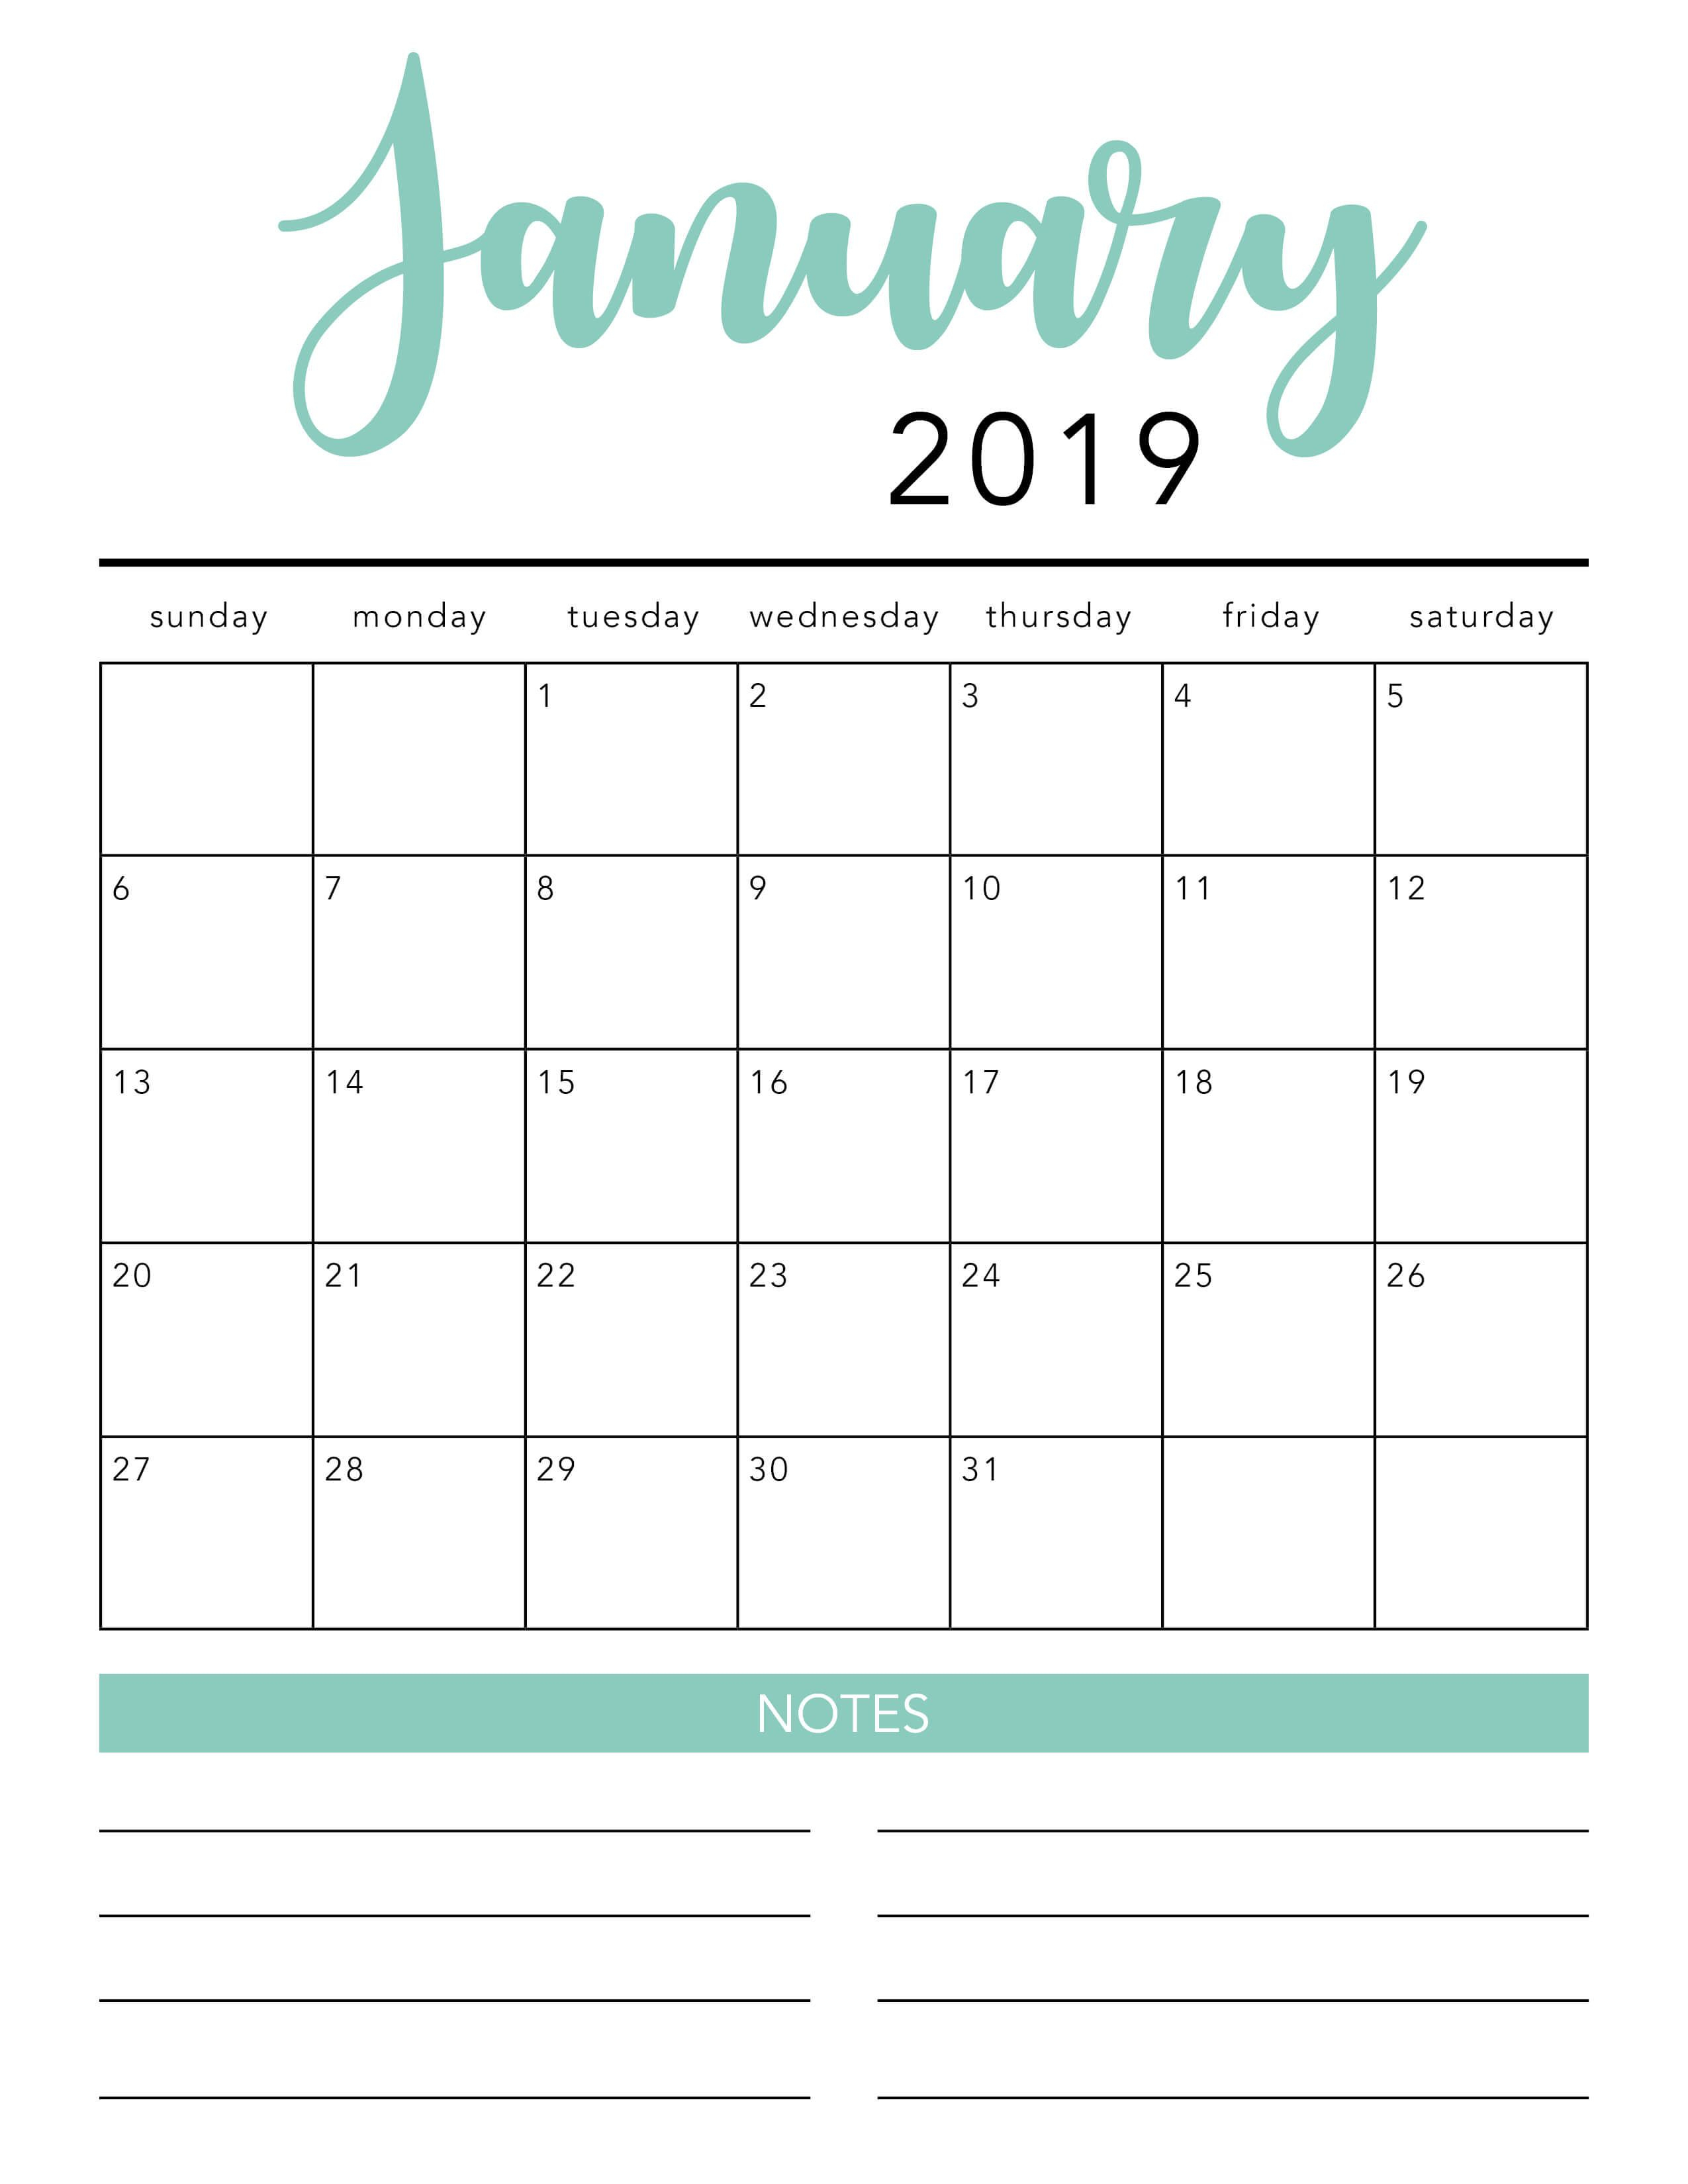 Free 2019 Printable Calendar Template (2 Colors!) - I Heart Naptime throughout Free Blank Calendar Templates To Print